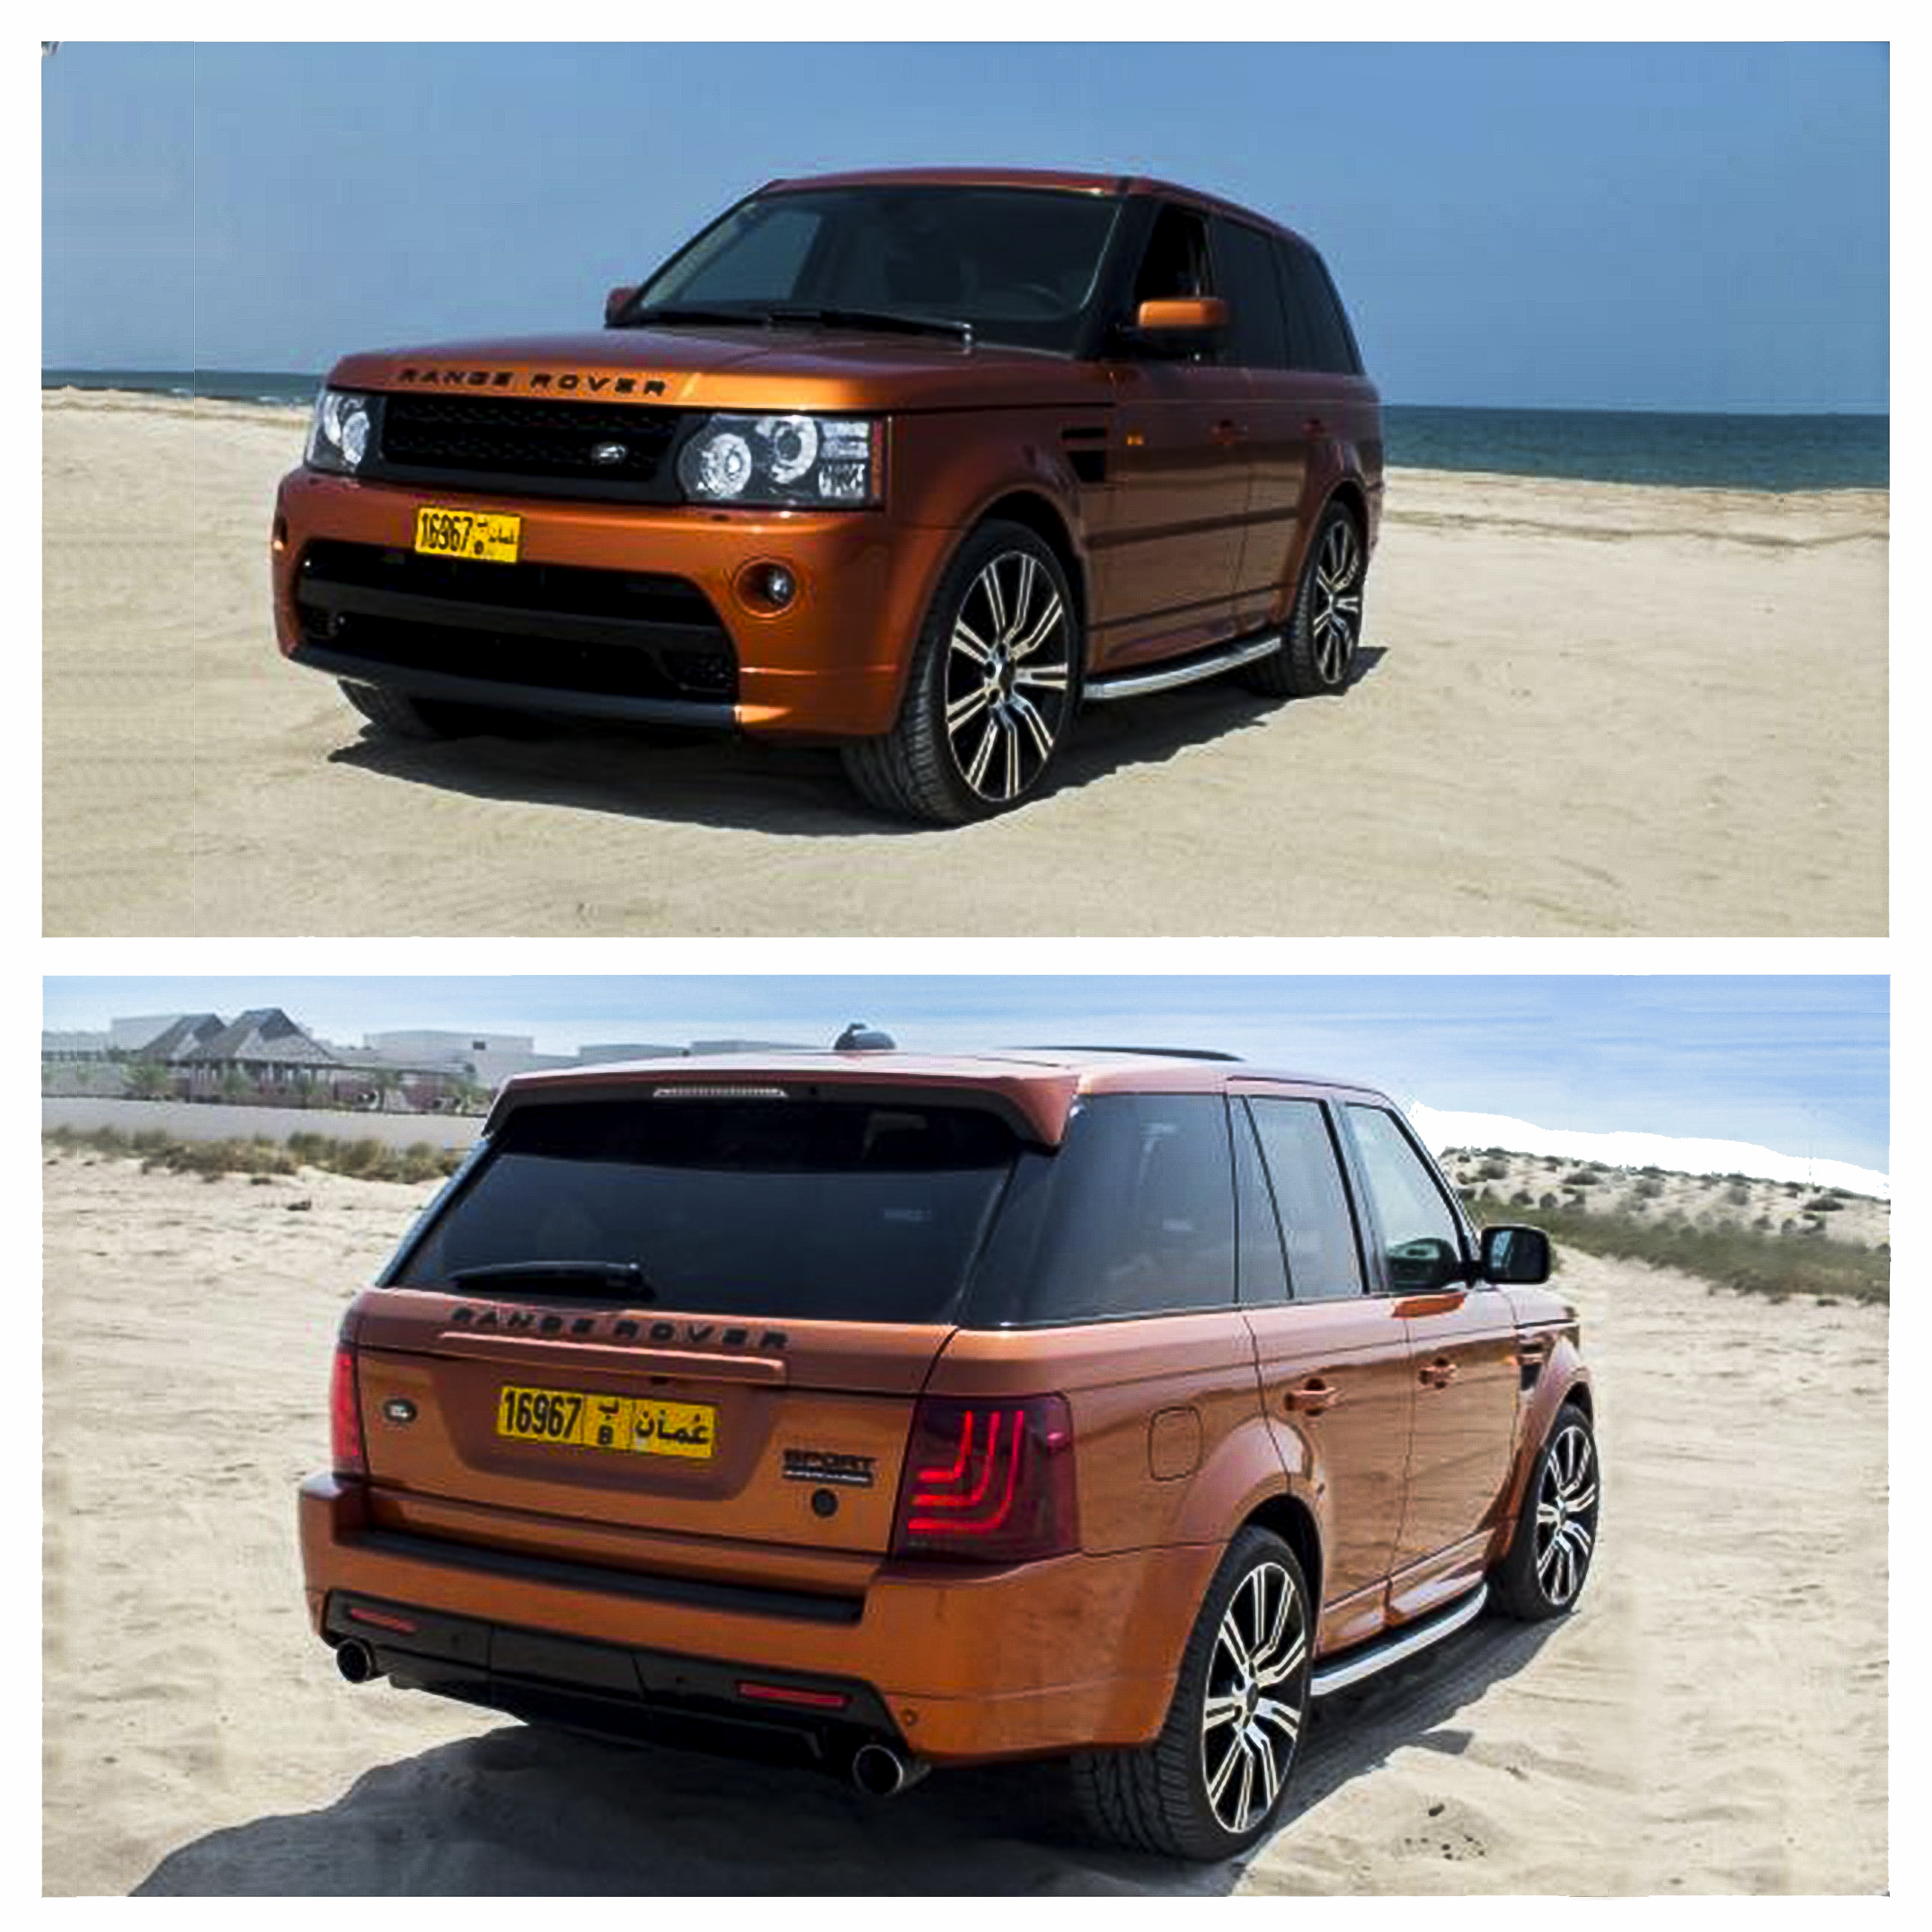 new car launches of 2014Successful launch of new taillight for the Range Rover Sport is